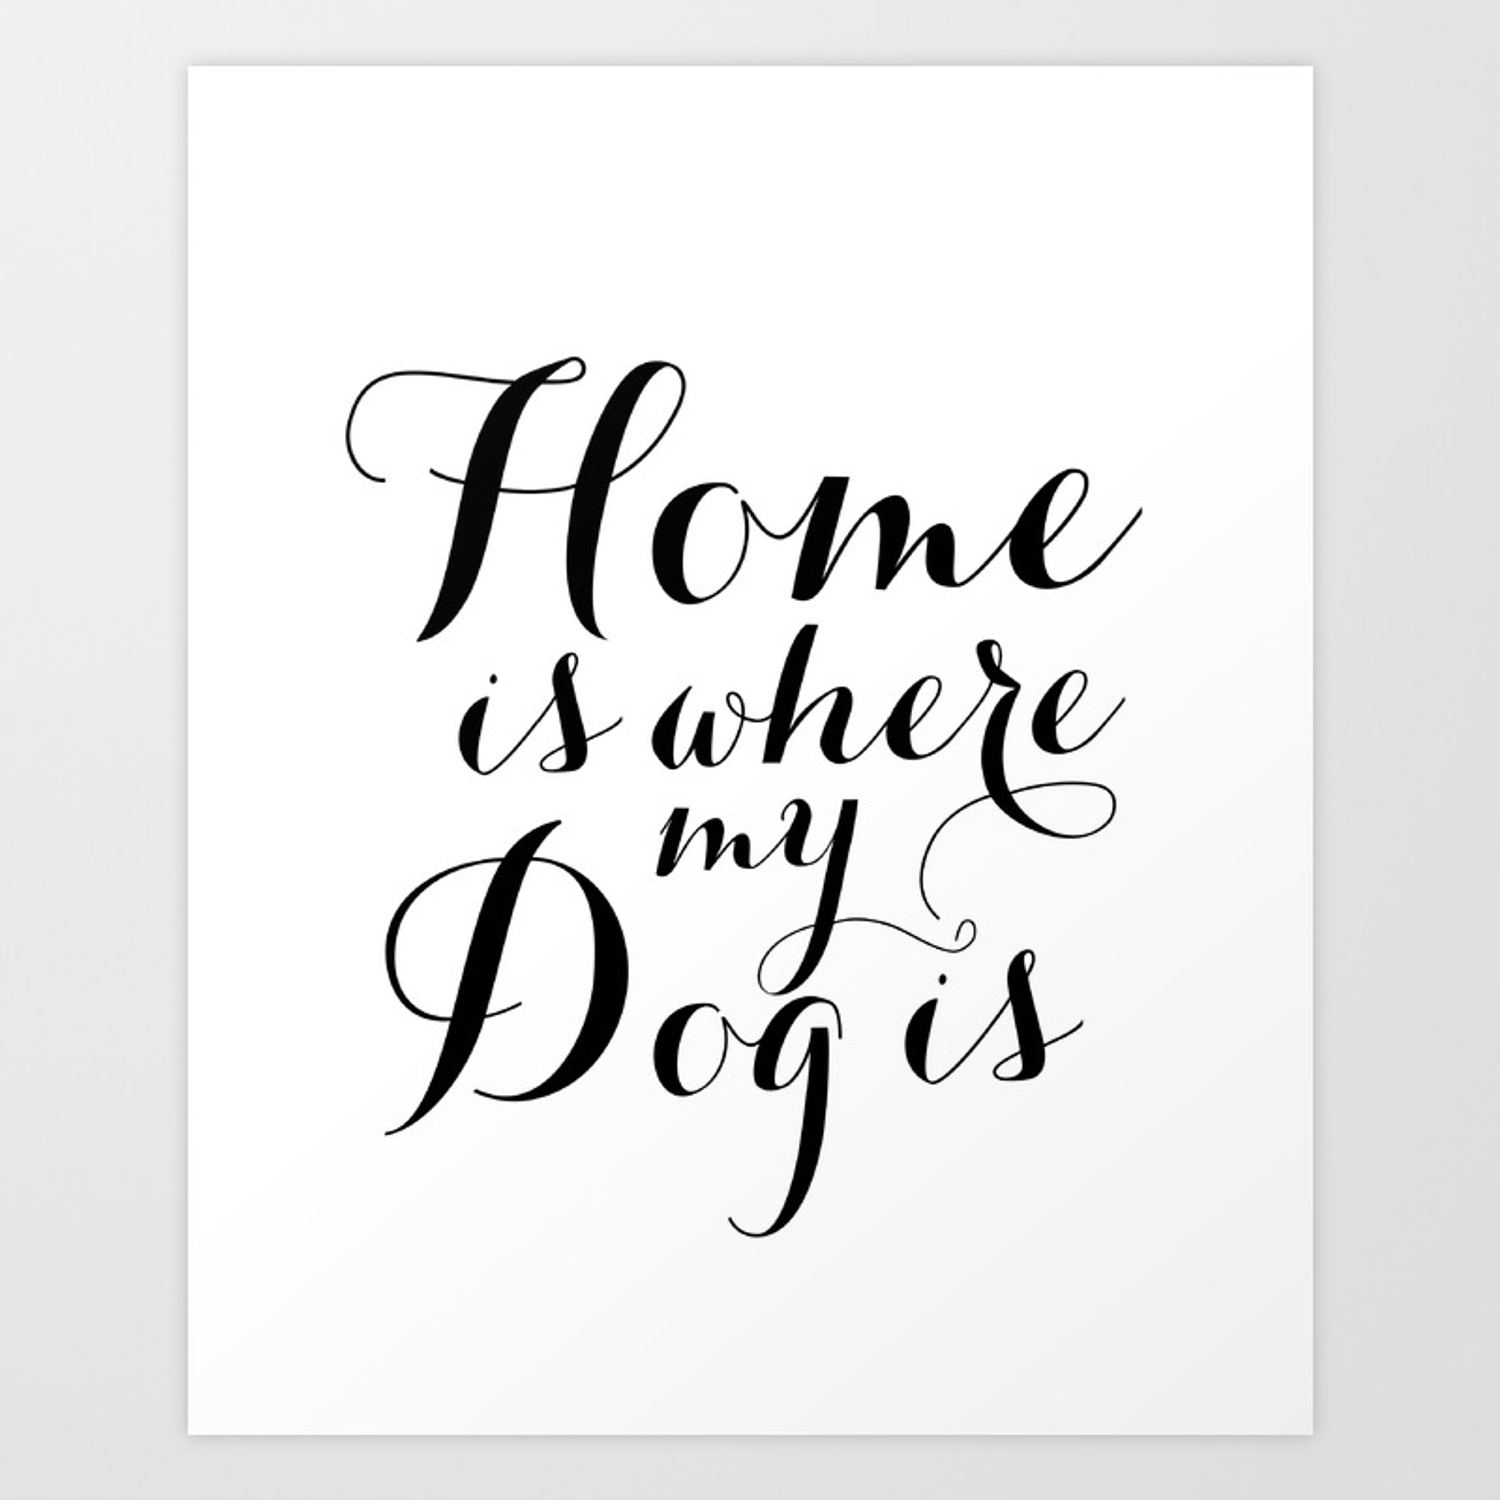 Decor Poster.Home interior design.Room wall print.Home is where my dog is.6850